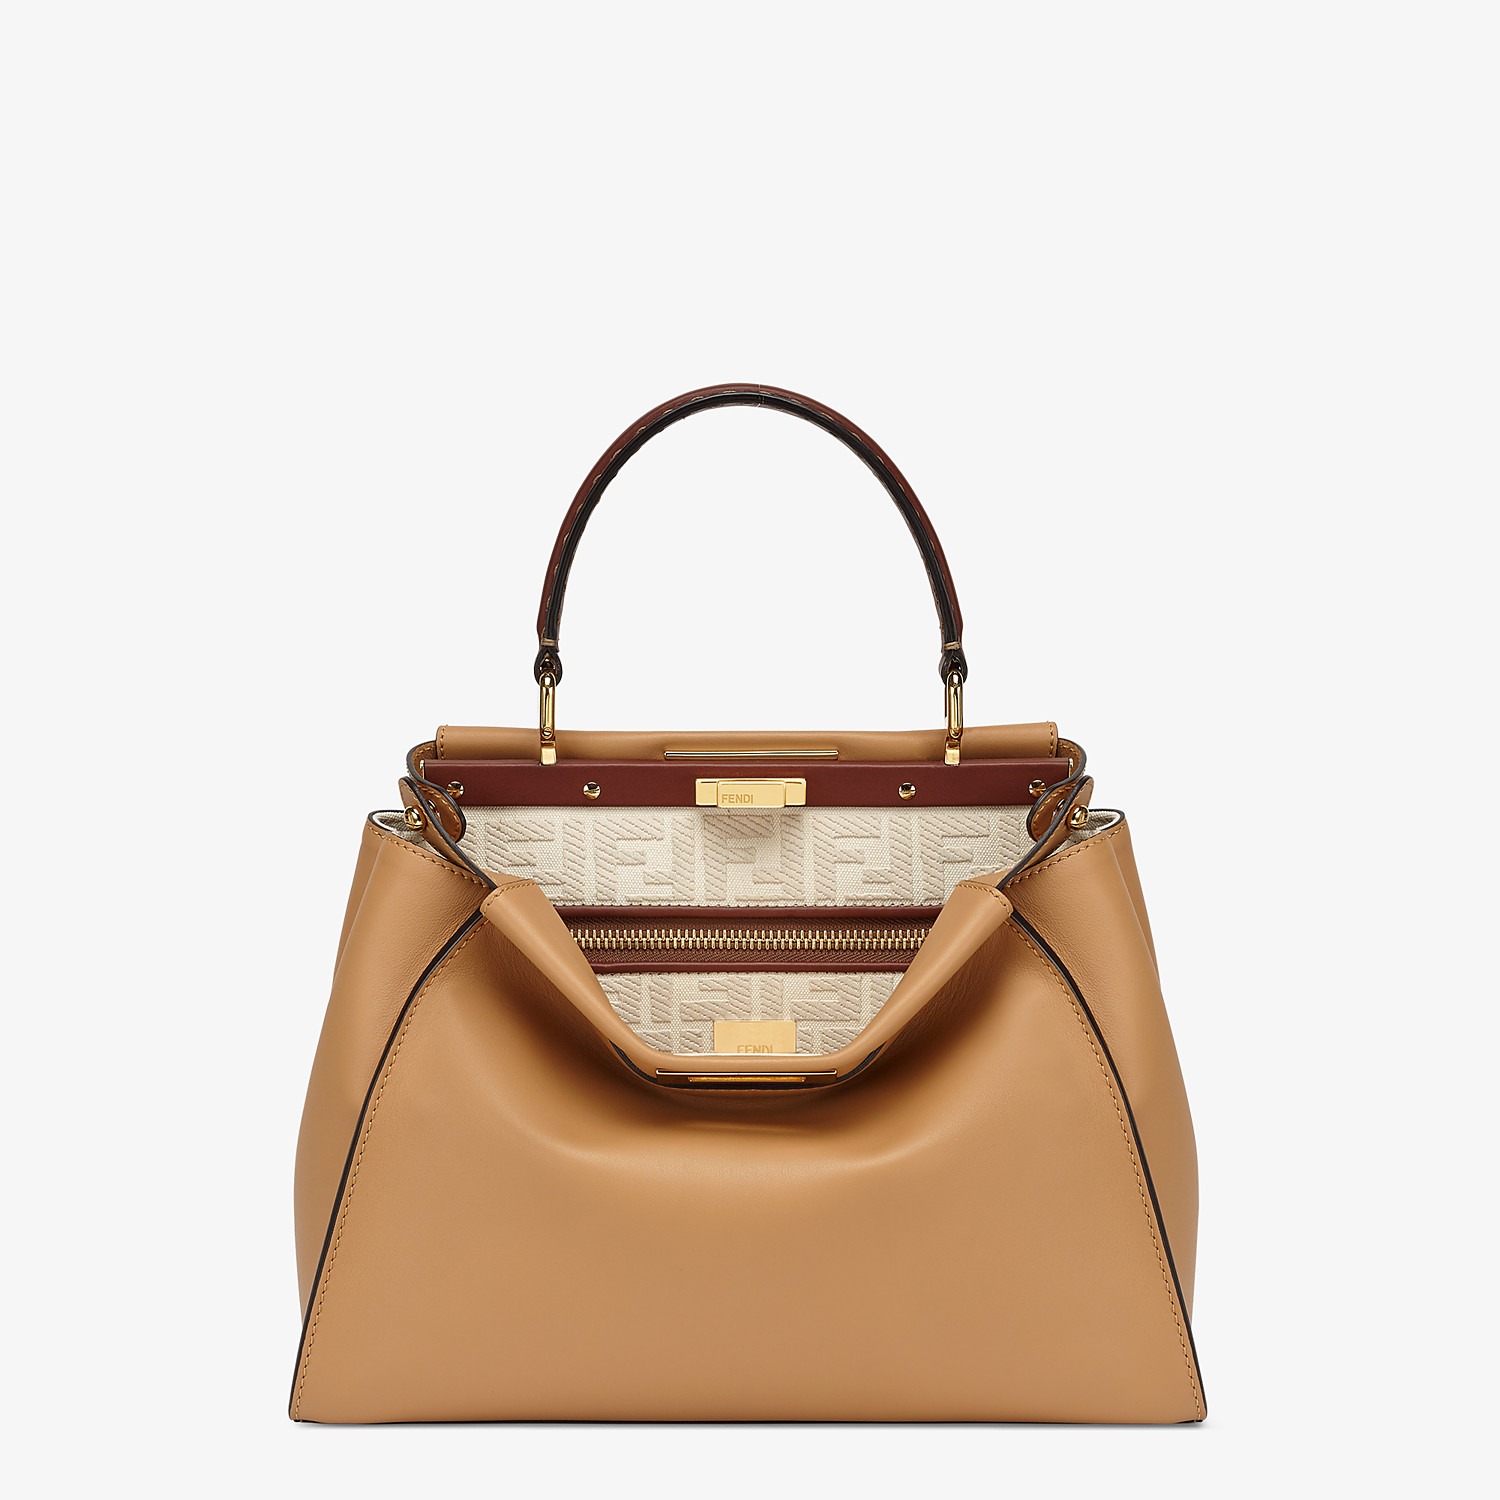 FENDI PEEKABOO ICONIC MEDIUM - Borsa in pelle beige e ricamo FF - vista 1 dettaglio